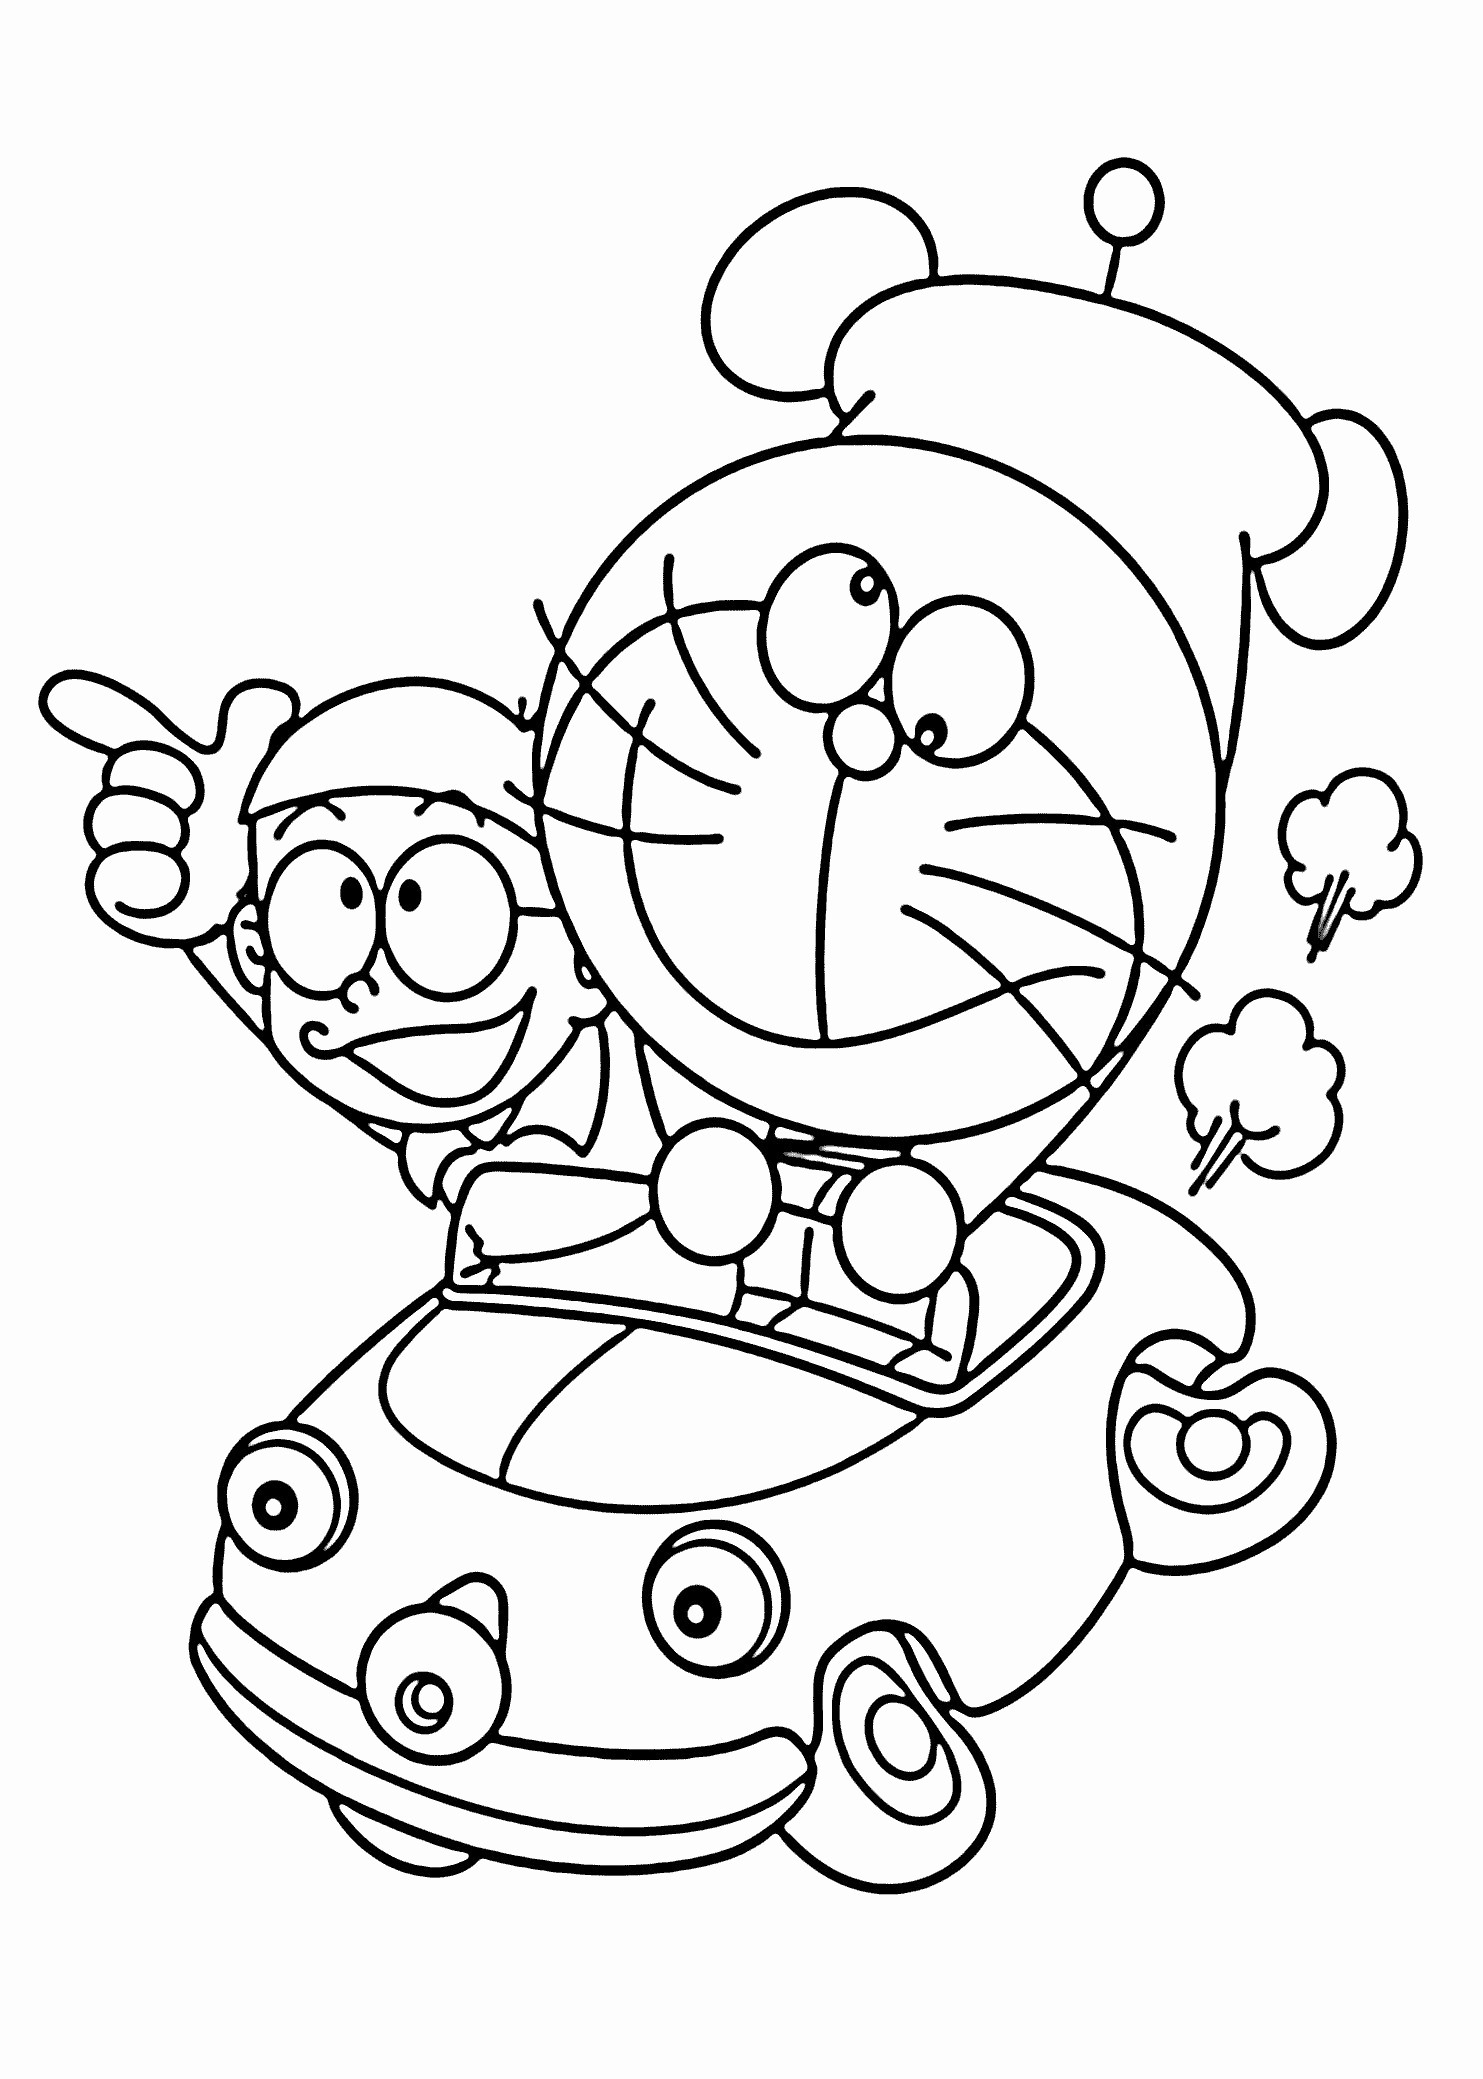 coloring pages that you can color online Download-Cuties Coloring Pages Basketball Coloring Page Elegant Cuties Coloring Pages Home Coloring Pages Best Color 1-f